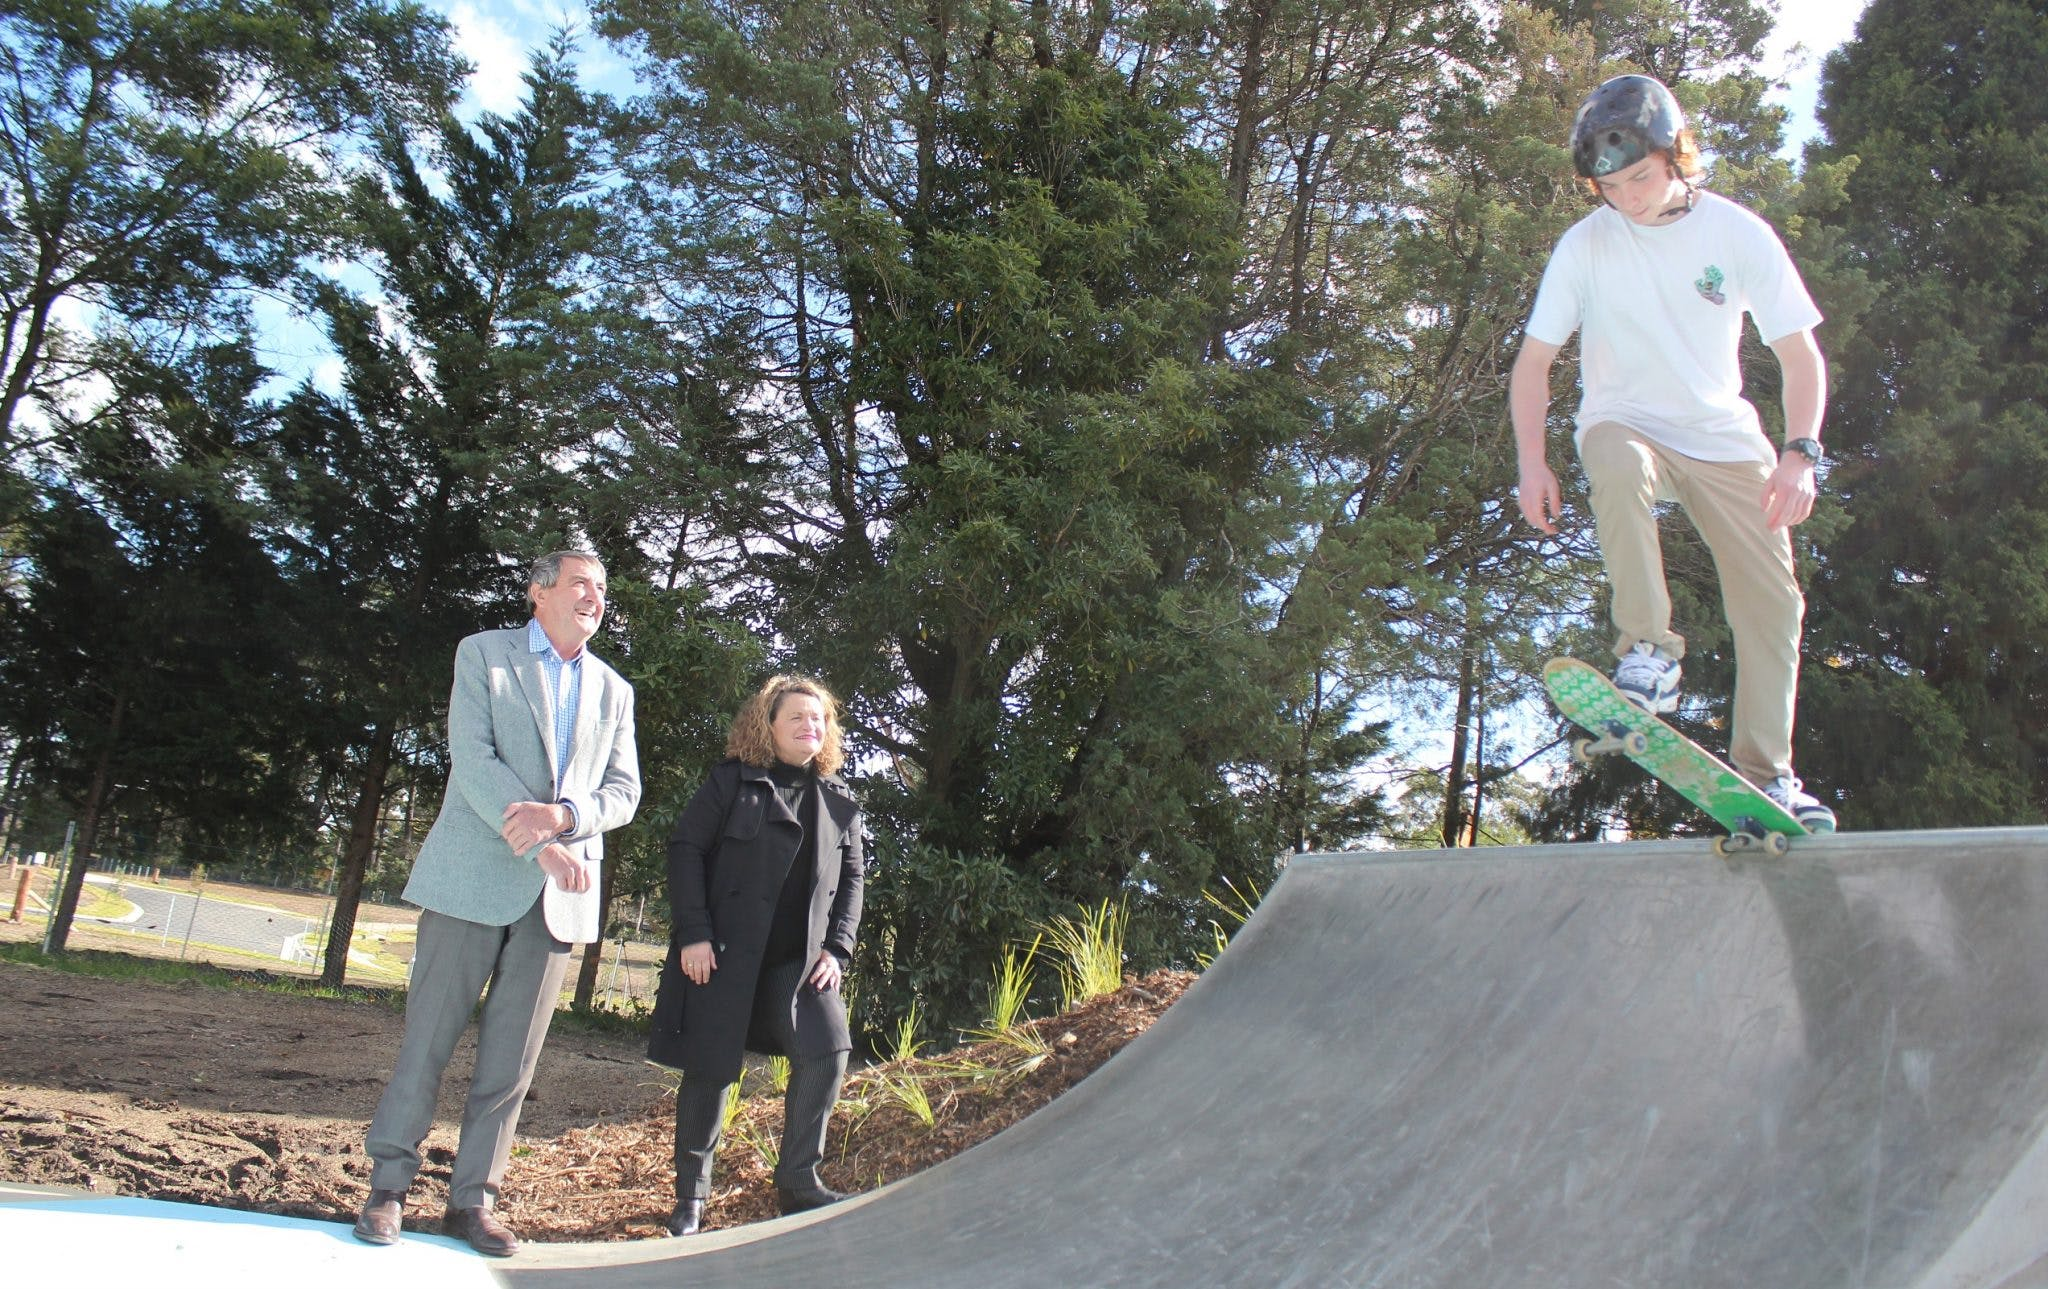 Tyson Robb tests the new skate facilities